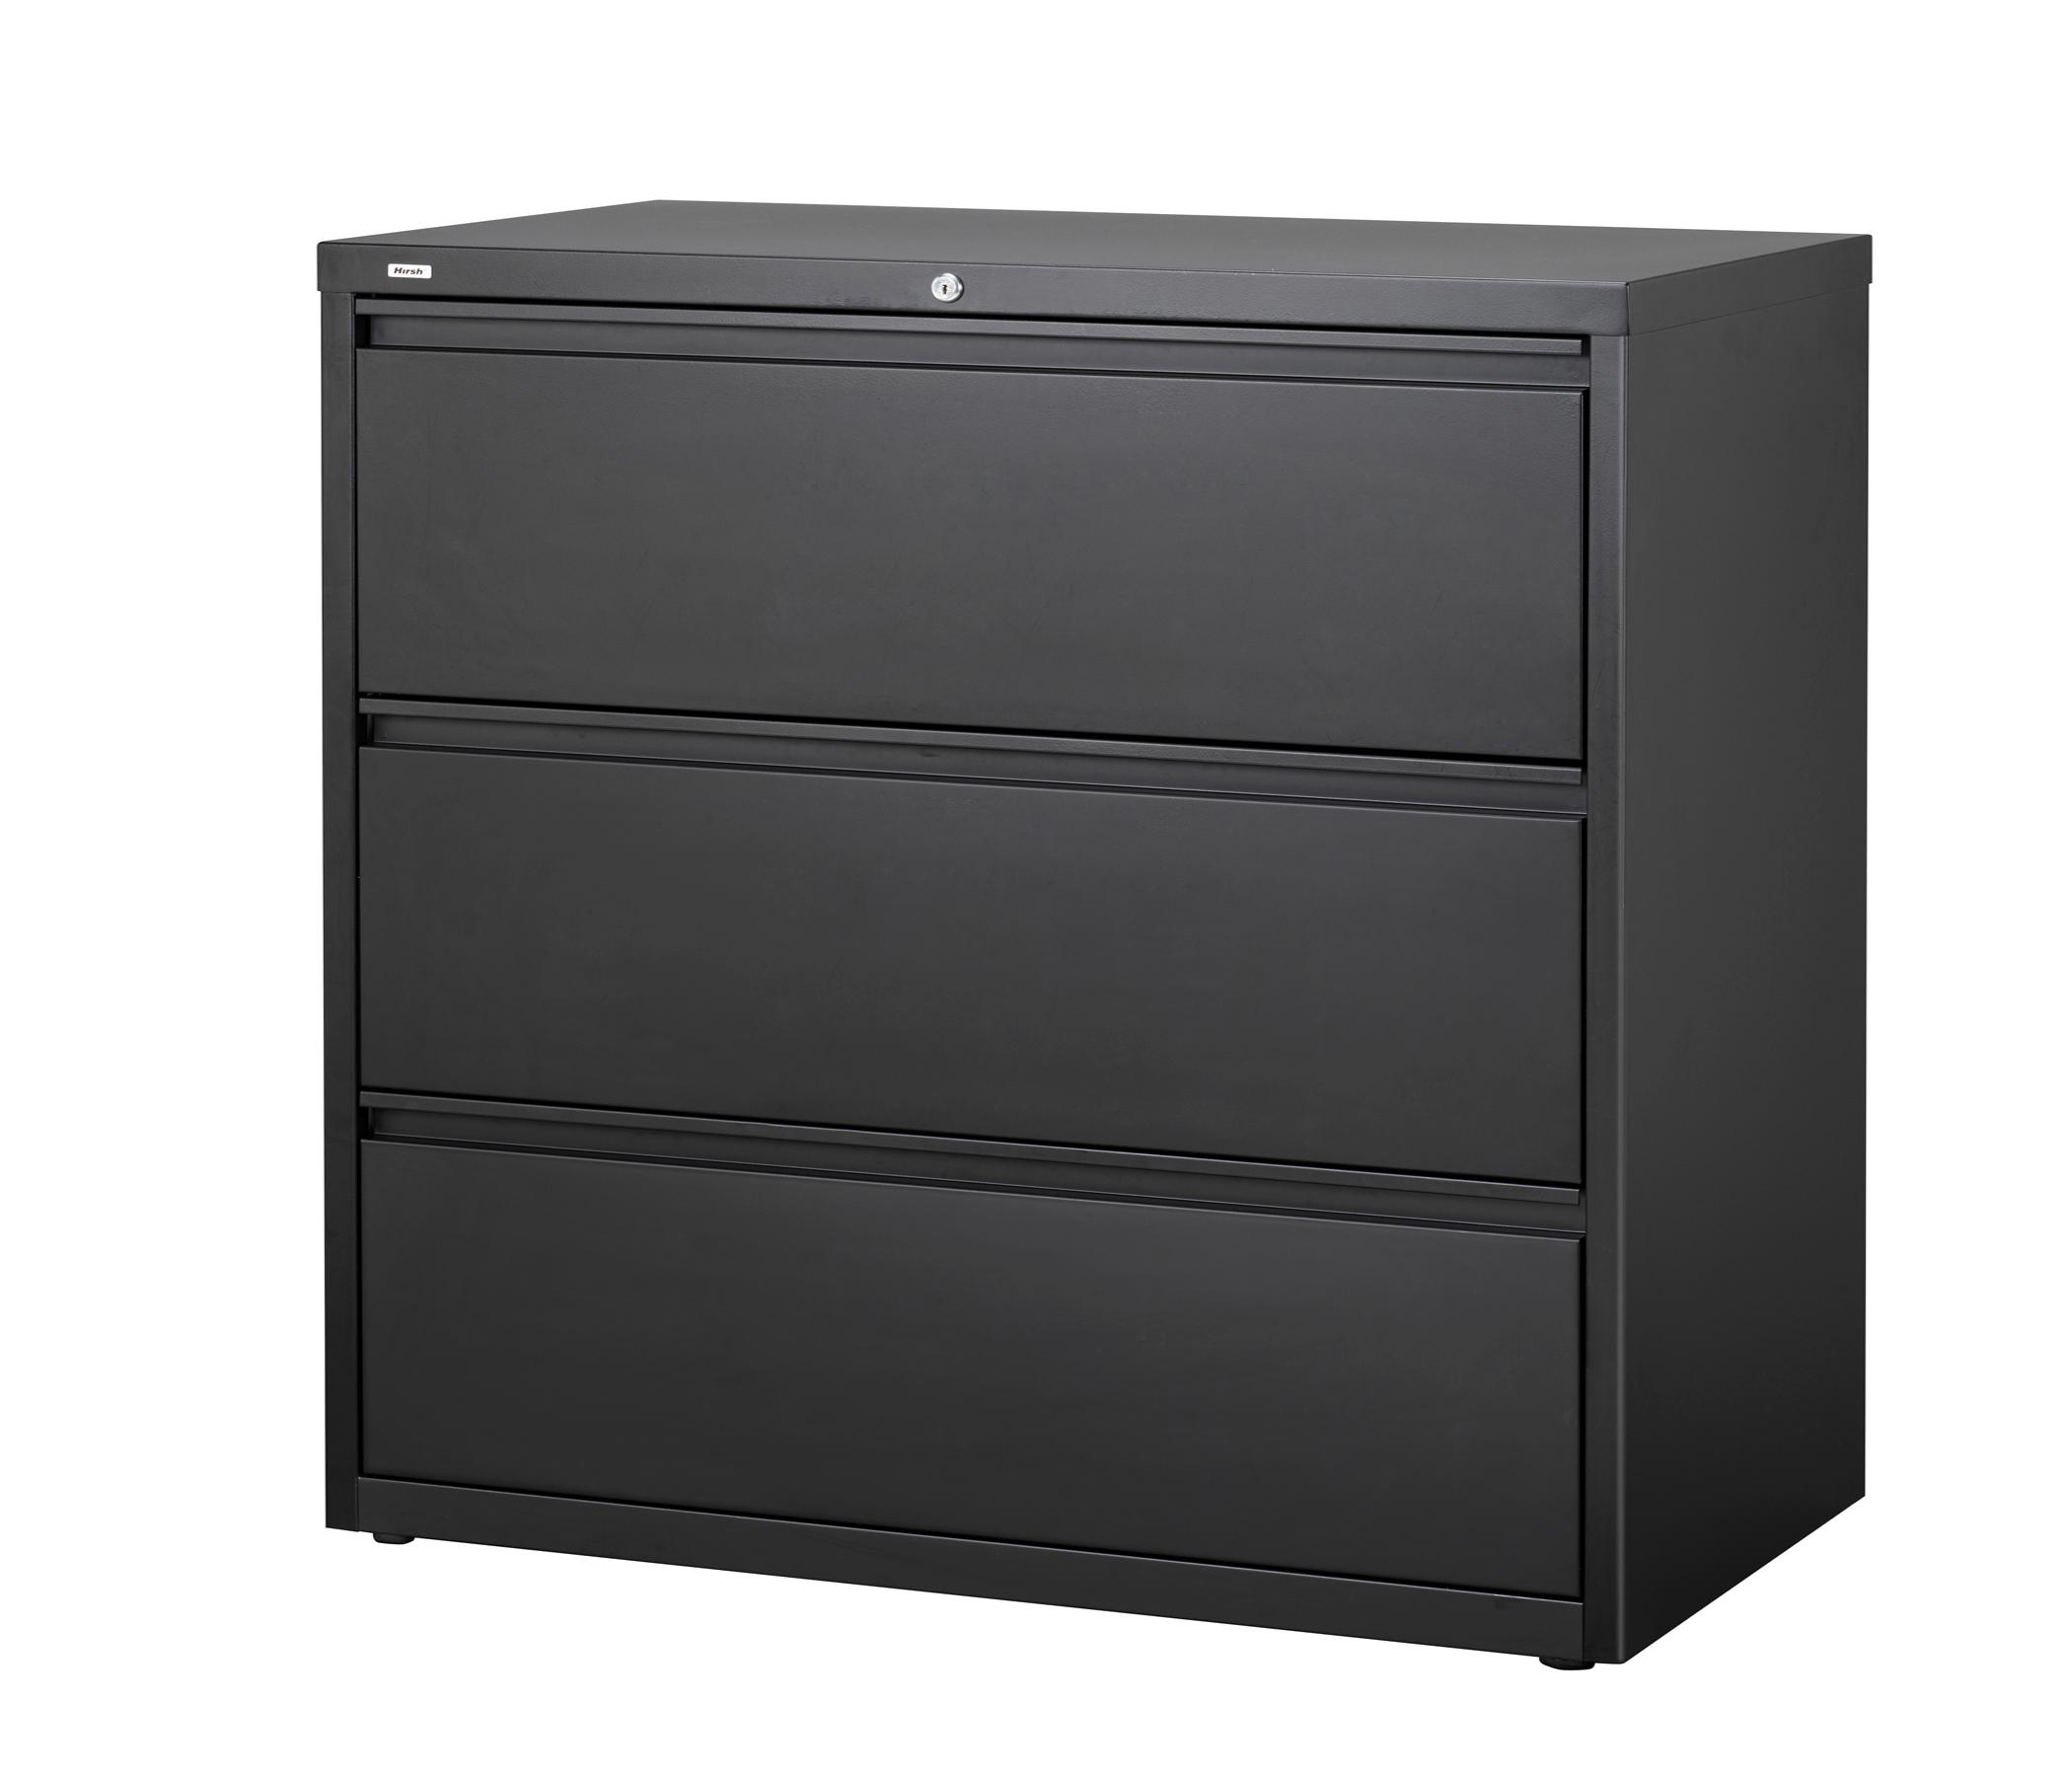 Hirsh Hl10000 Series 42 Inch Wide 3 Drawer Commercial